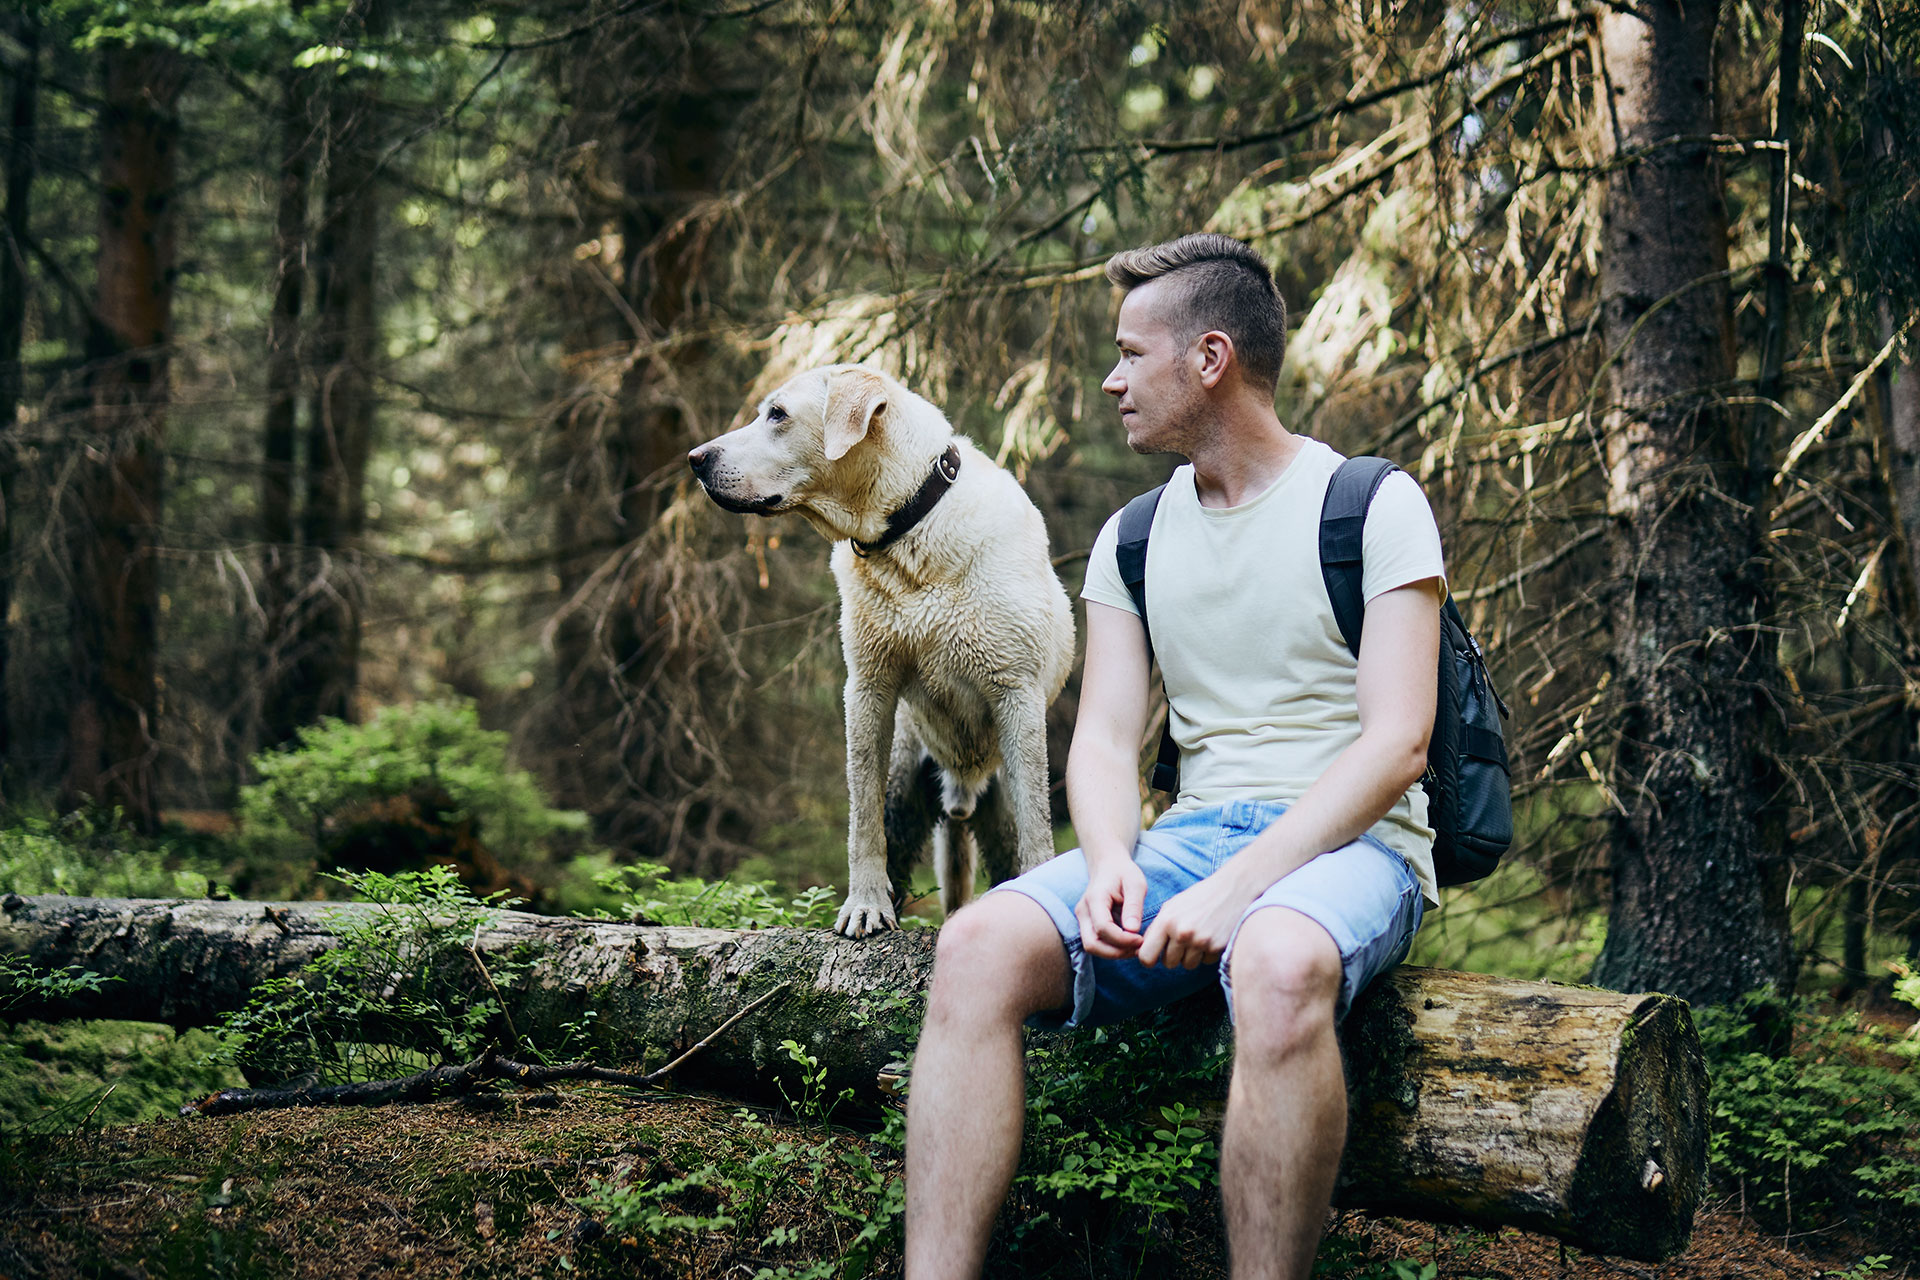 tourist-with-dog-in-forest-V457J9N